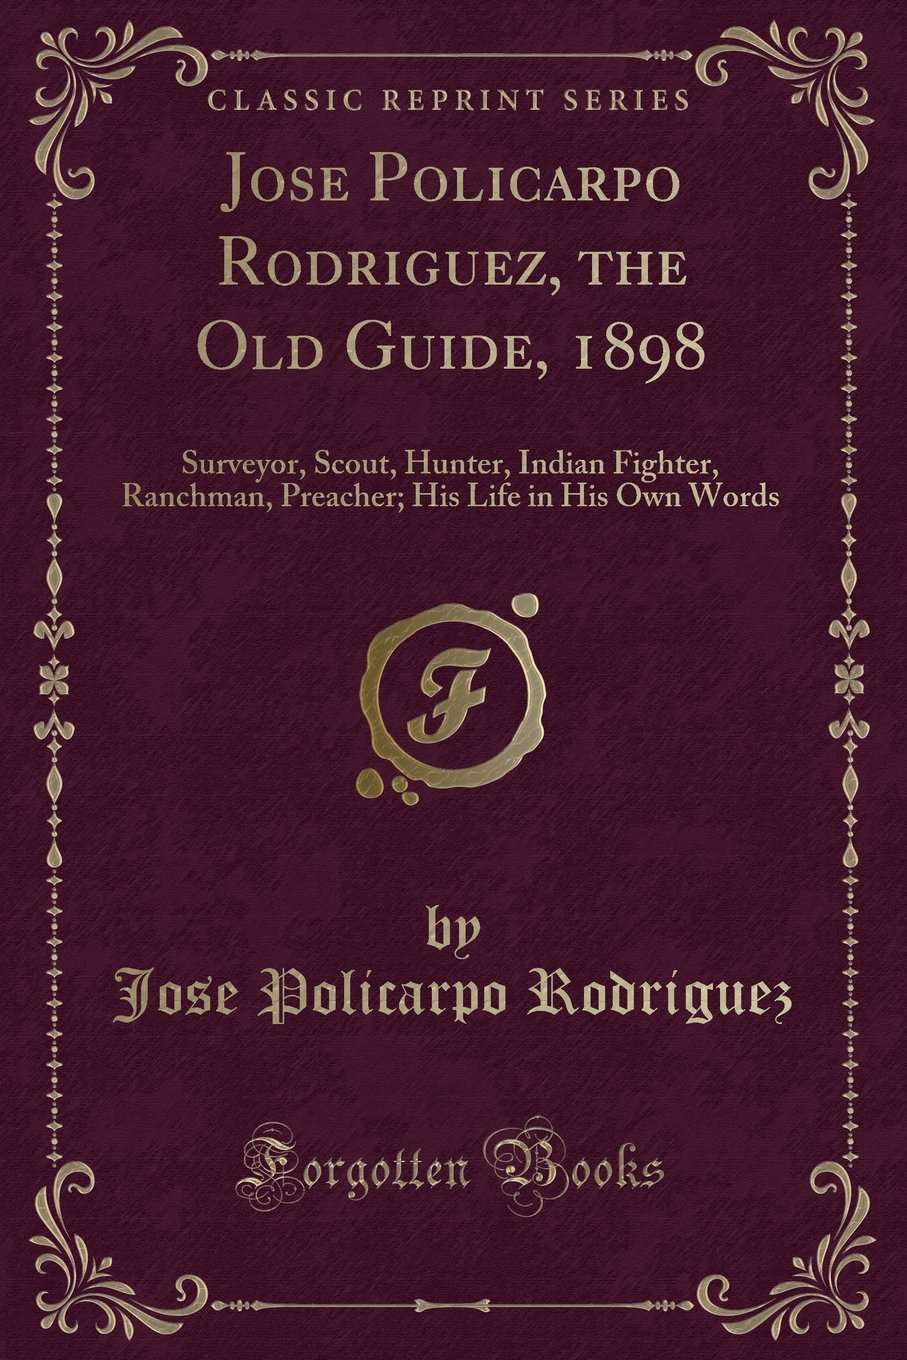 Jose Policarpo Rodriguez, the Old Guide, 1898: Surveyor, Scout, Hunter, Indian Fighter, Ranchman, Preacher; His Life in His Own Words (Classic Reprint) pdf